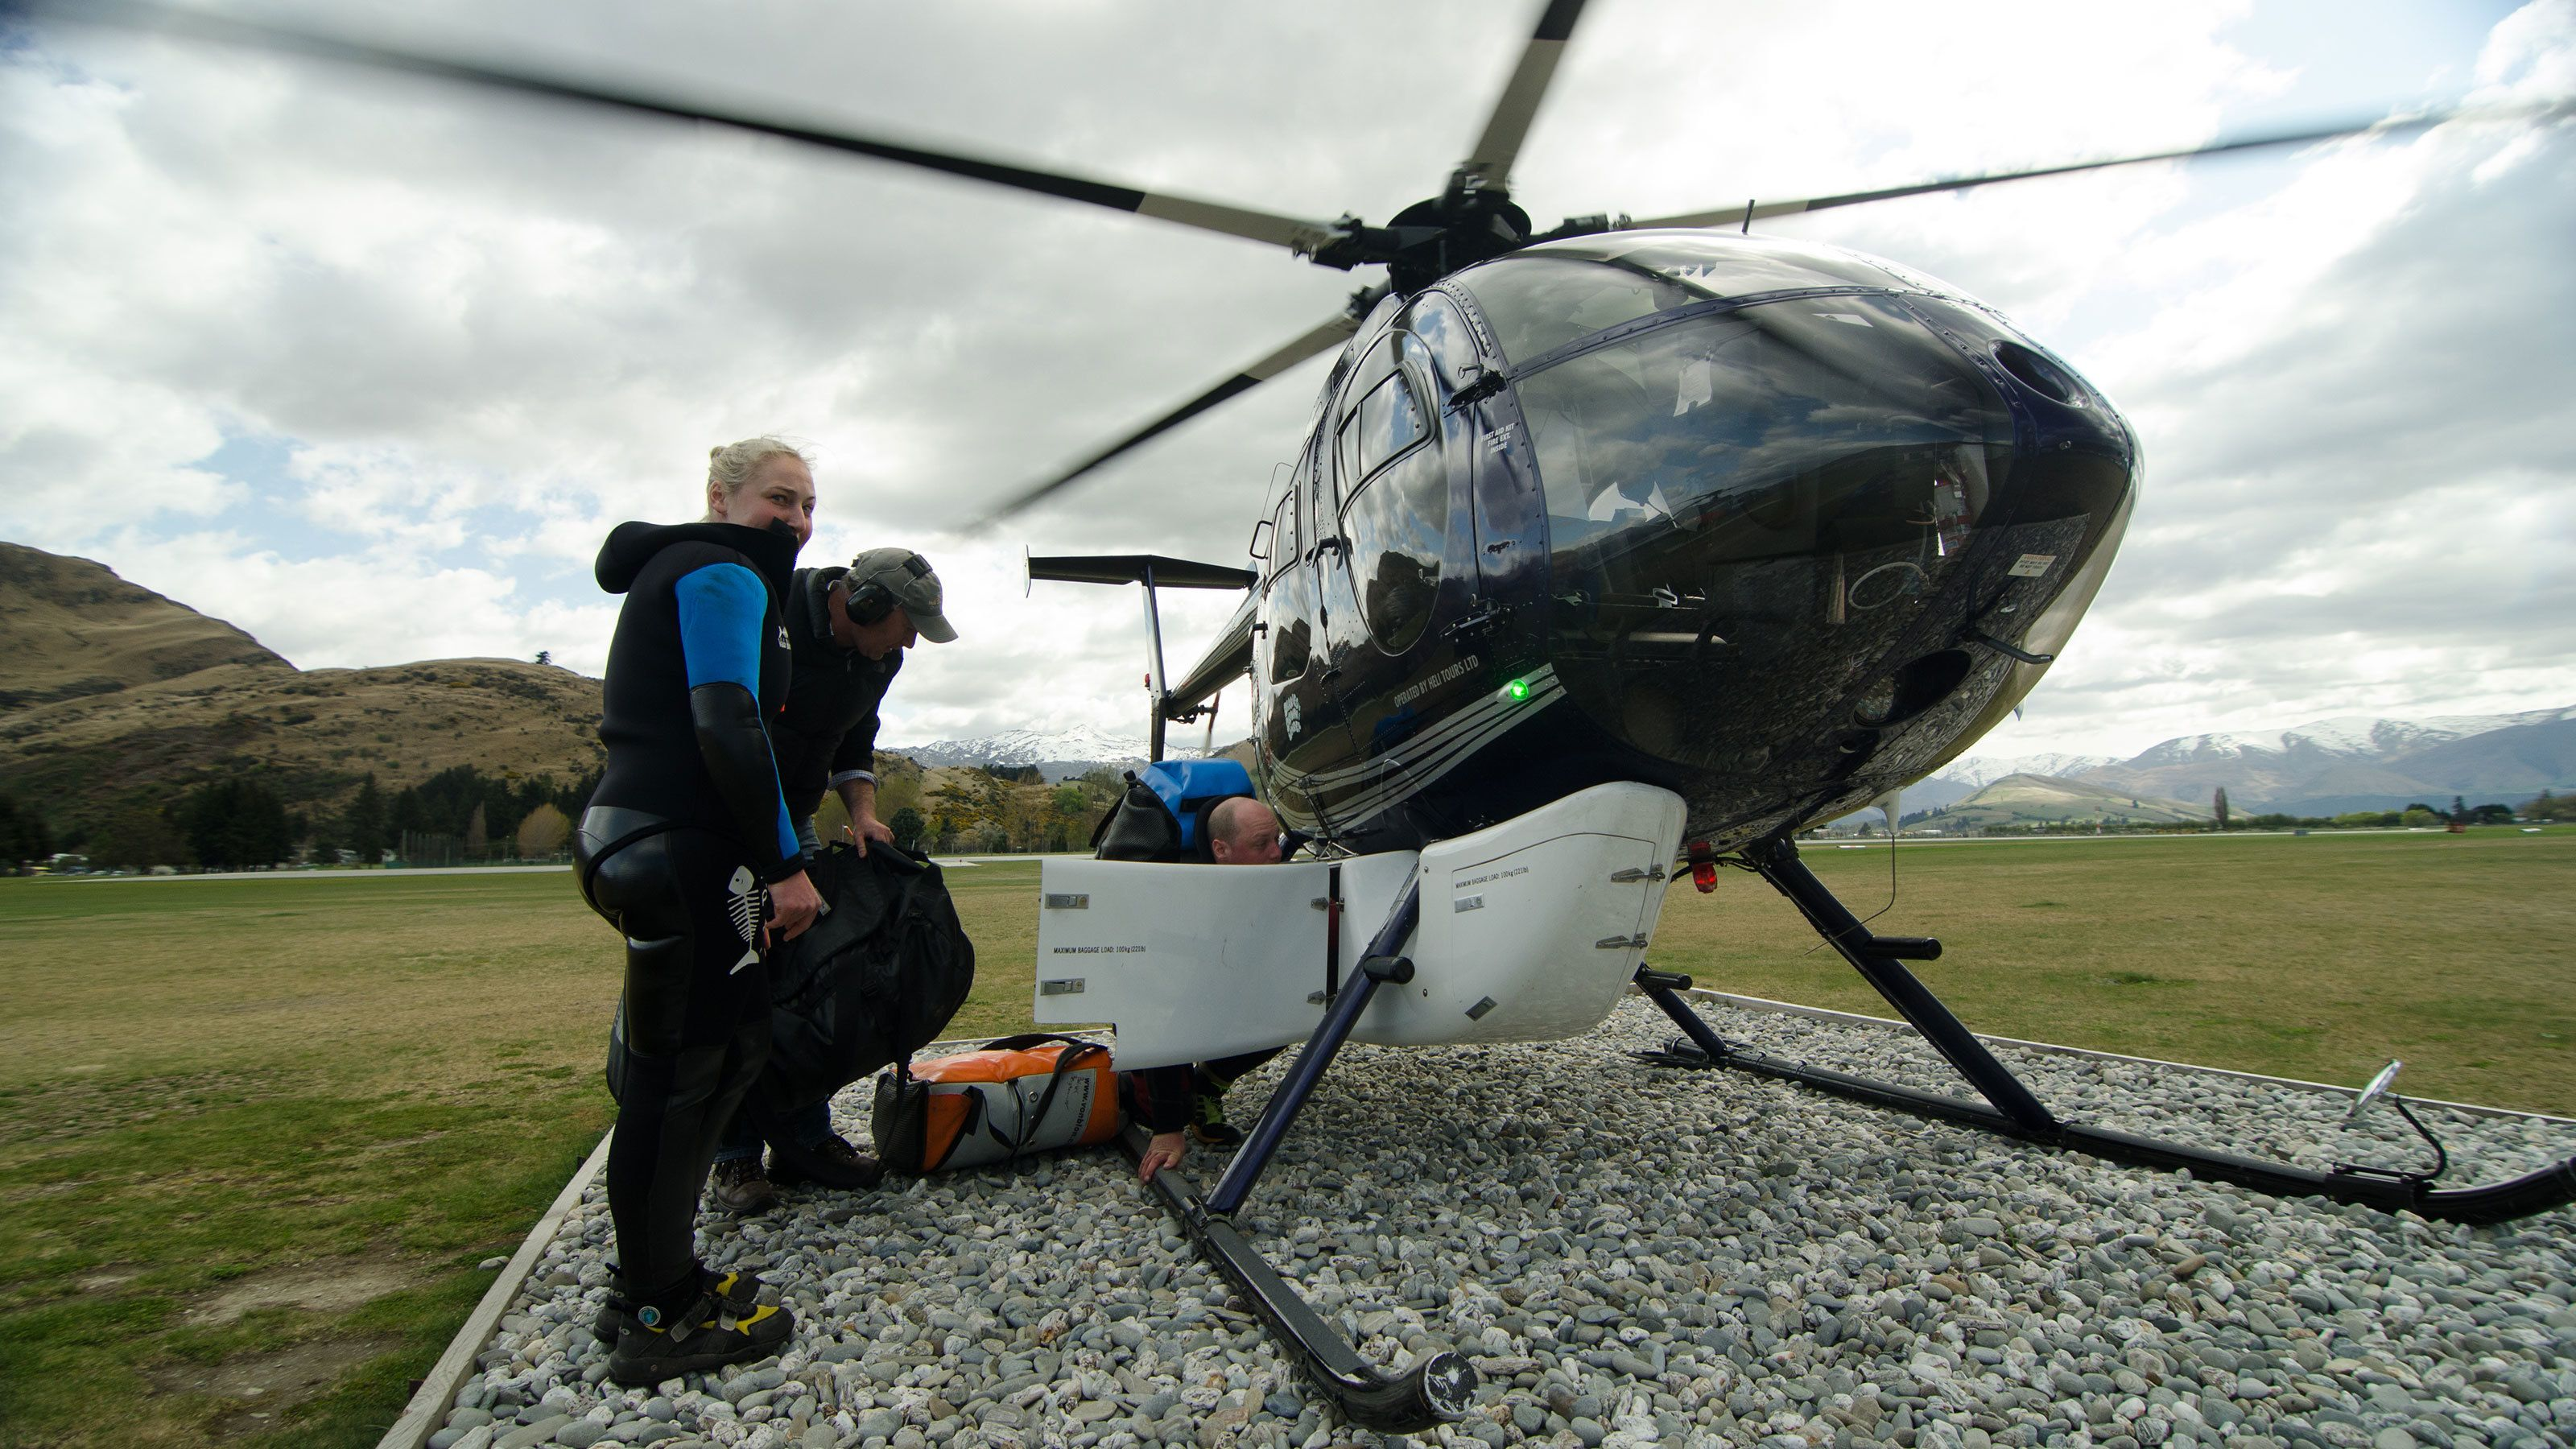 Adventures packing gear into helicopter in New Zealand